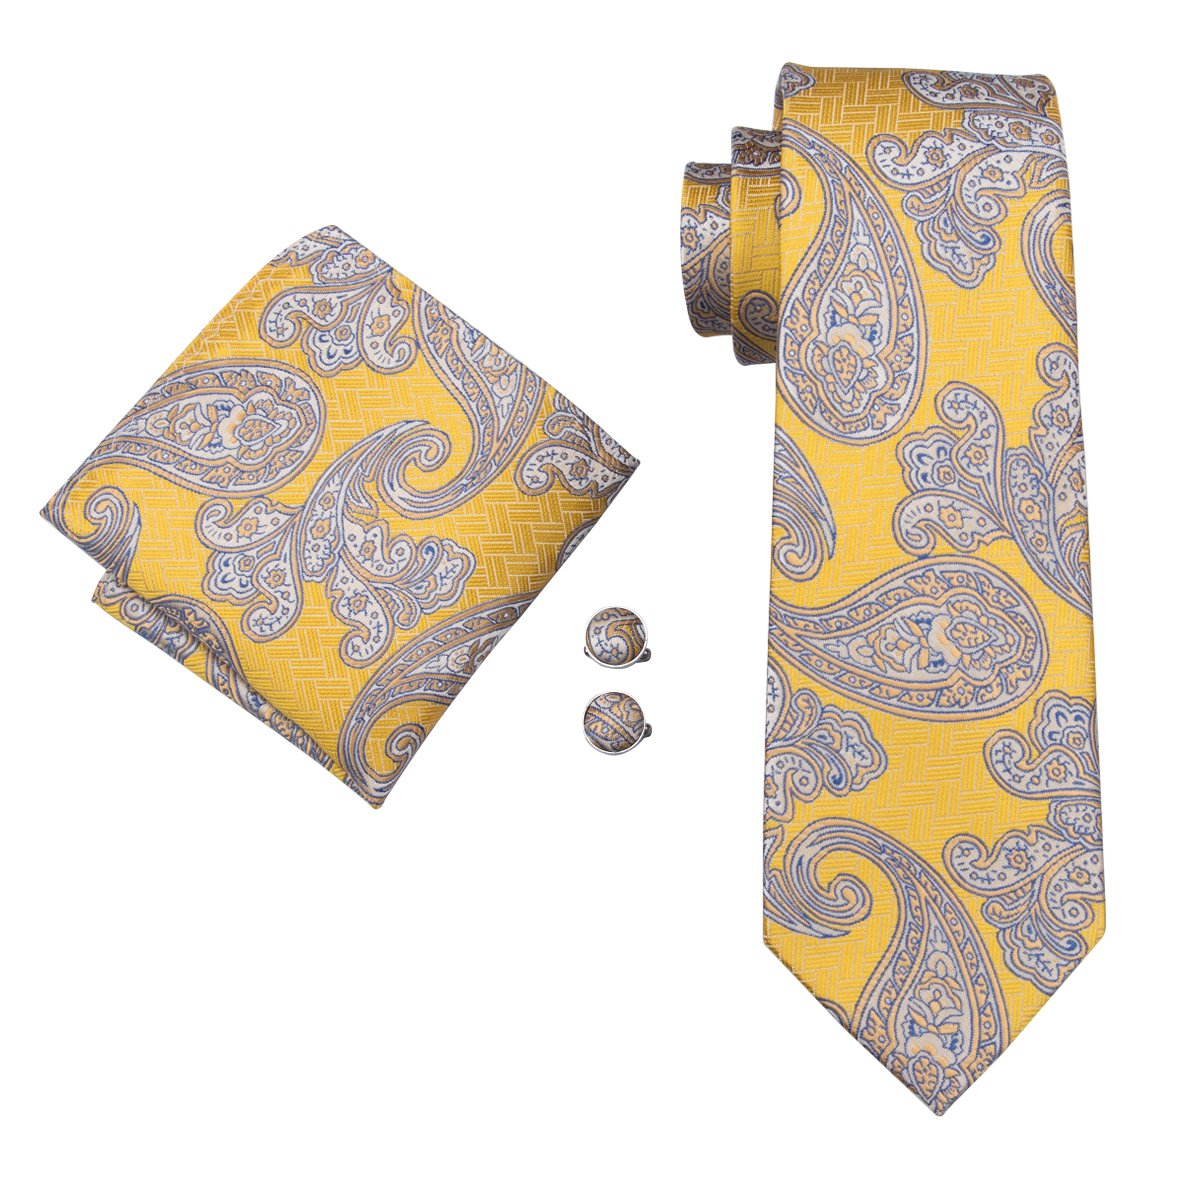 Hi-Tie Classic Gold Champagne Tie Pocket Square and Cufflinks Gift Box set Woven Silk Wedding Necktie